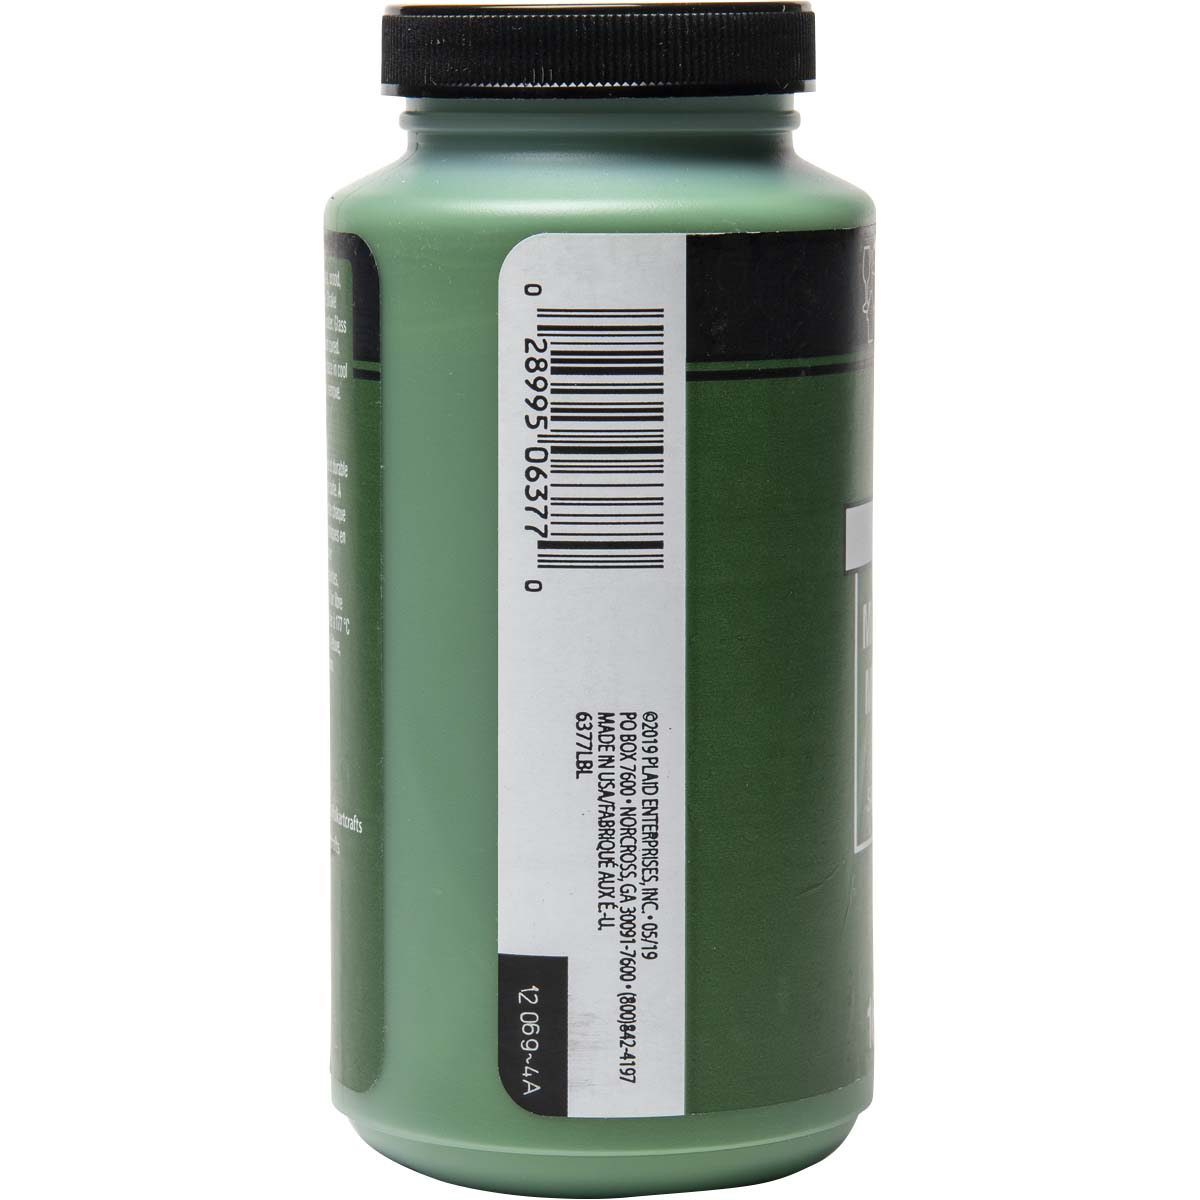 FolkArt ® Multi-Surface Satin Acrylic Paints - Classic Green, 16 oz.